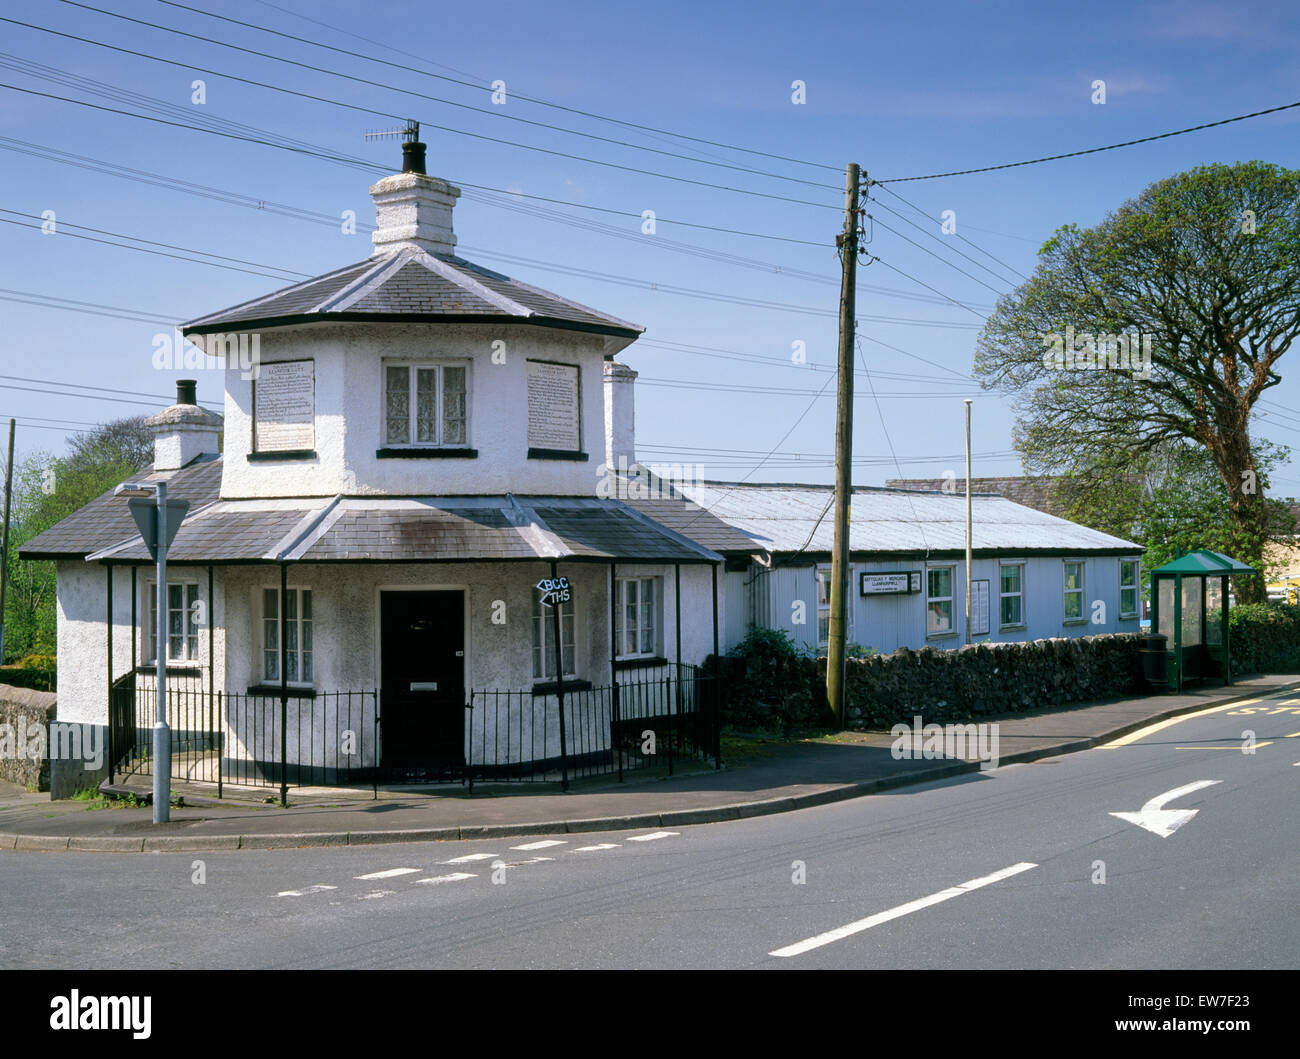 Llanfair PG octagonal toll house of 1822-3, one of several built on Anglesey along Thomas Telford's Holyhead - Stock Image